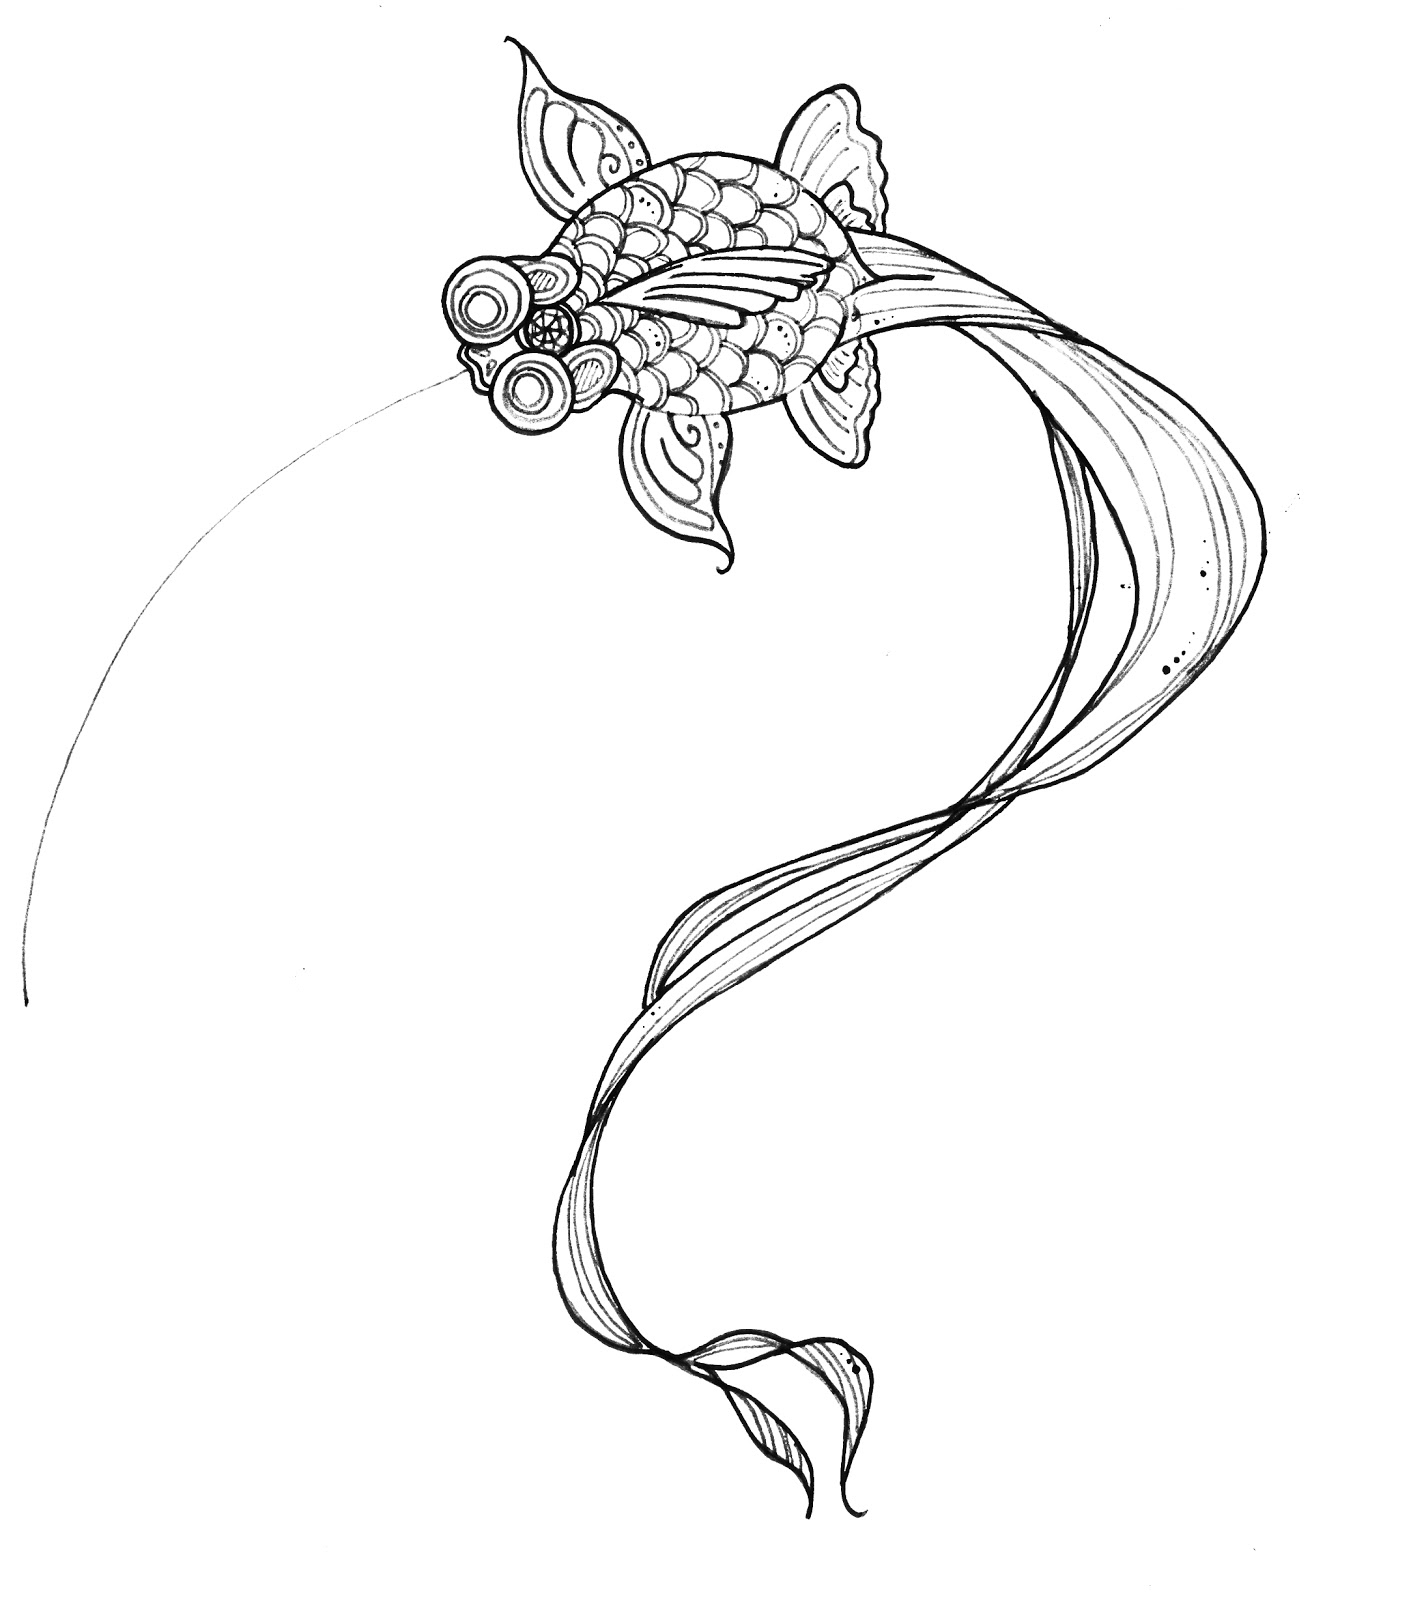 kite images for drawing at getdrawings com free for personal use